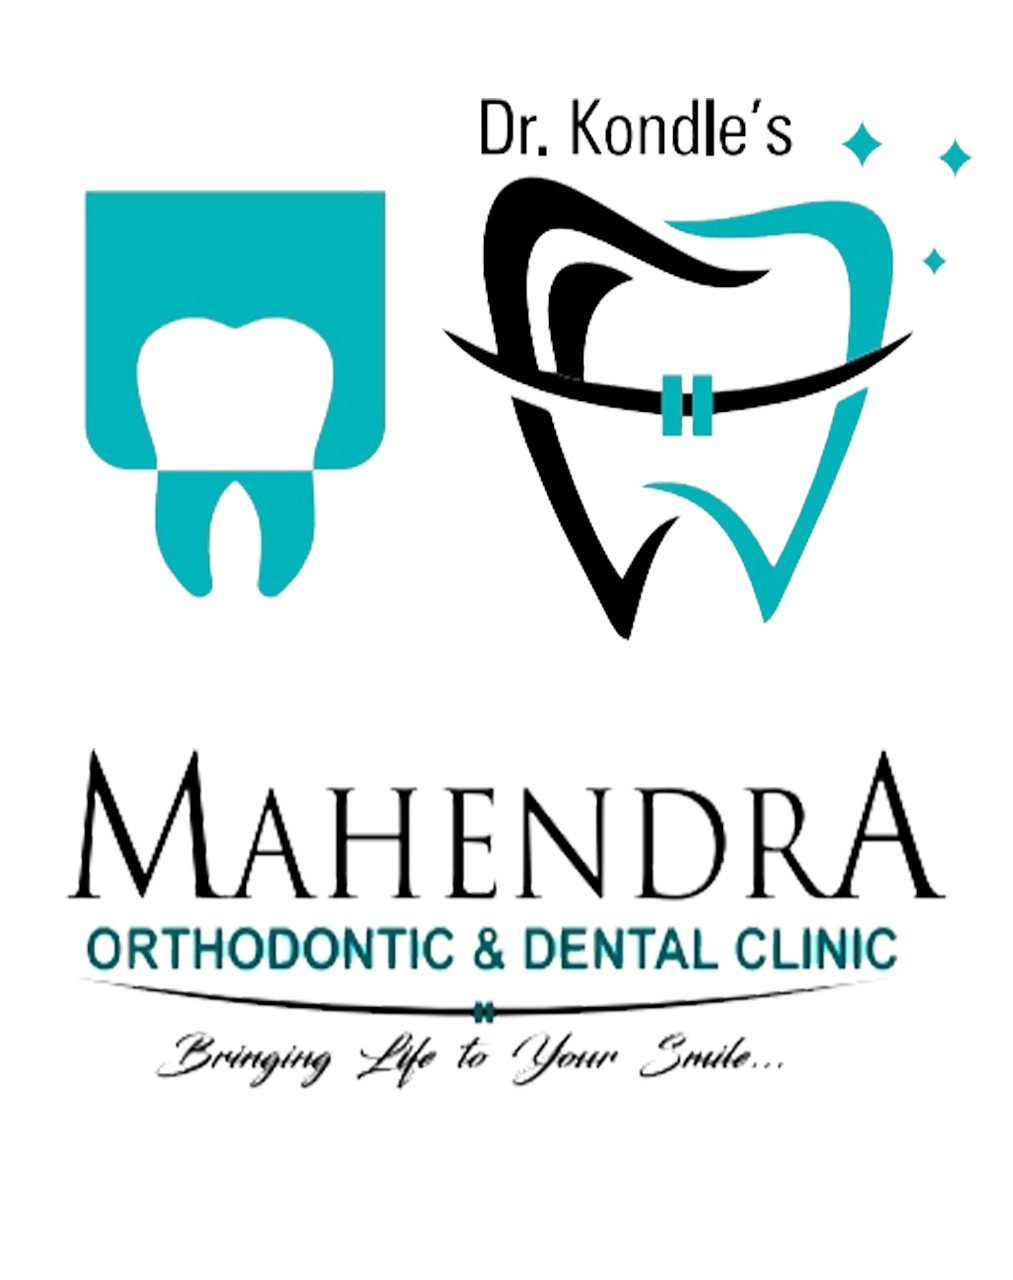 MAHENDRA ORTHODONTIC AND DENTAL CLINIC